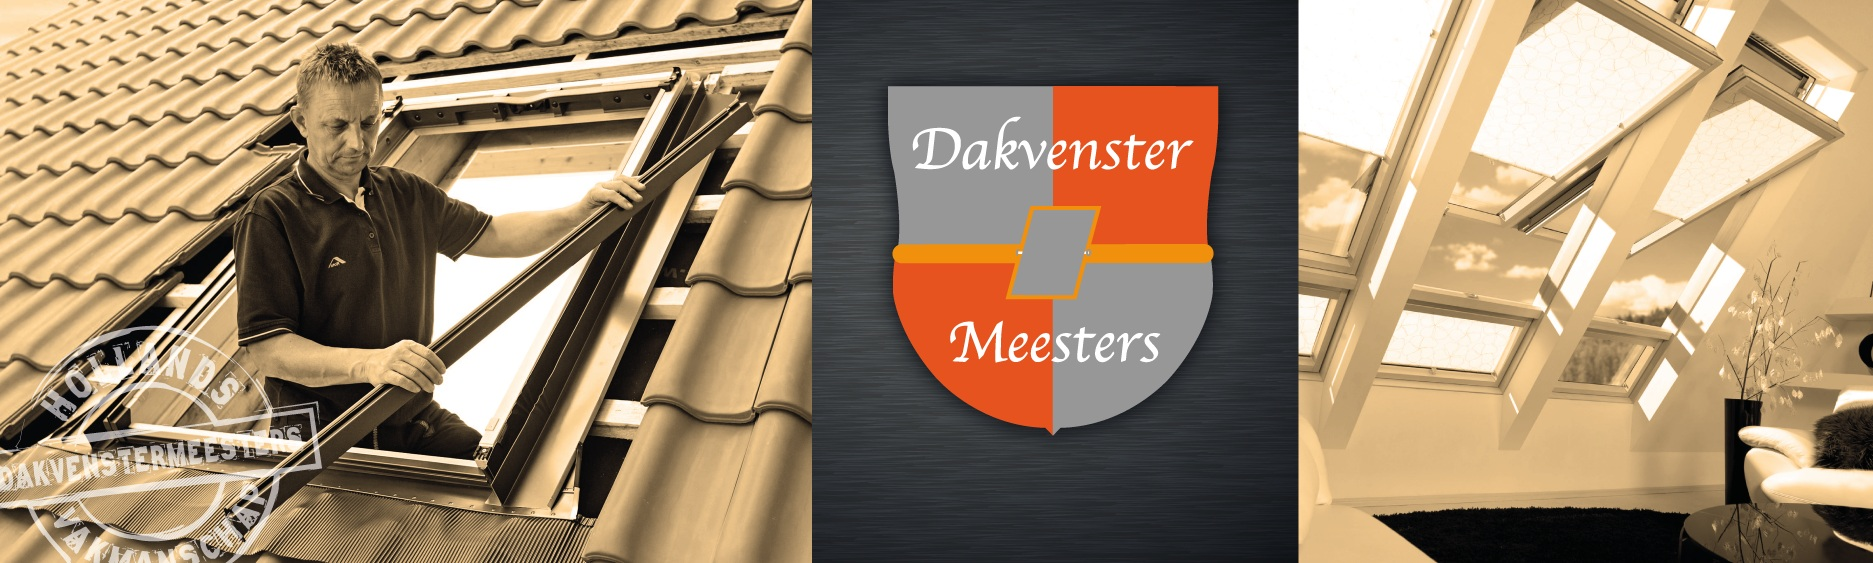 Banner_dakvenstermeesters